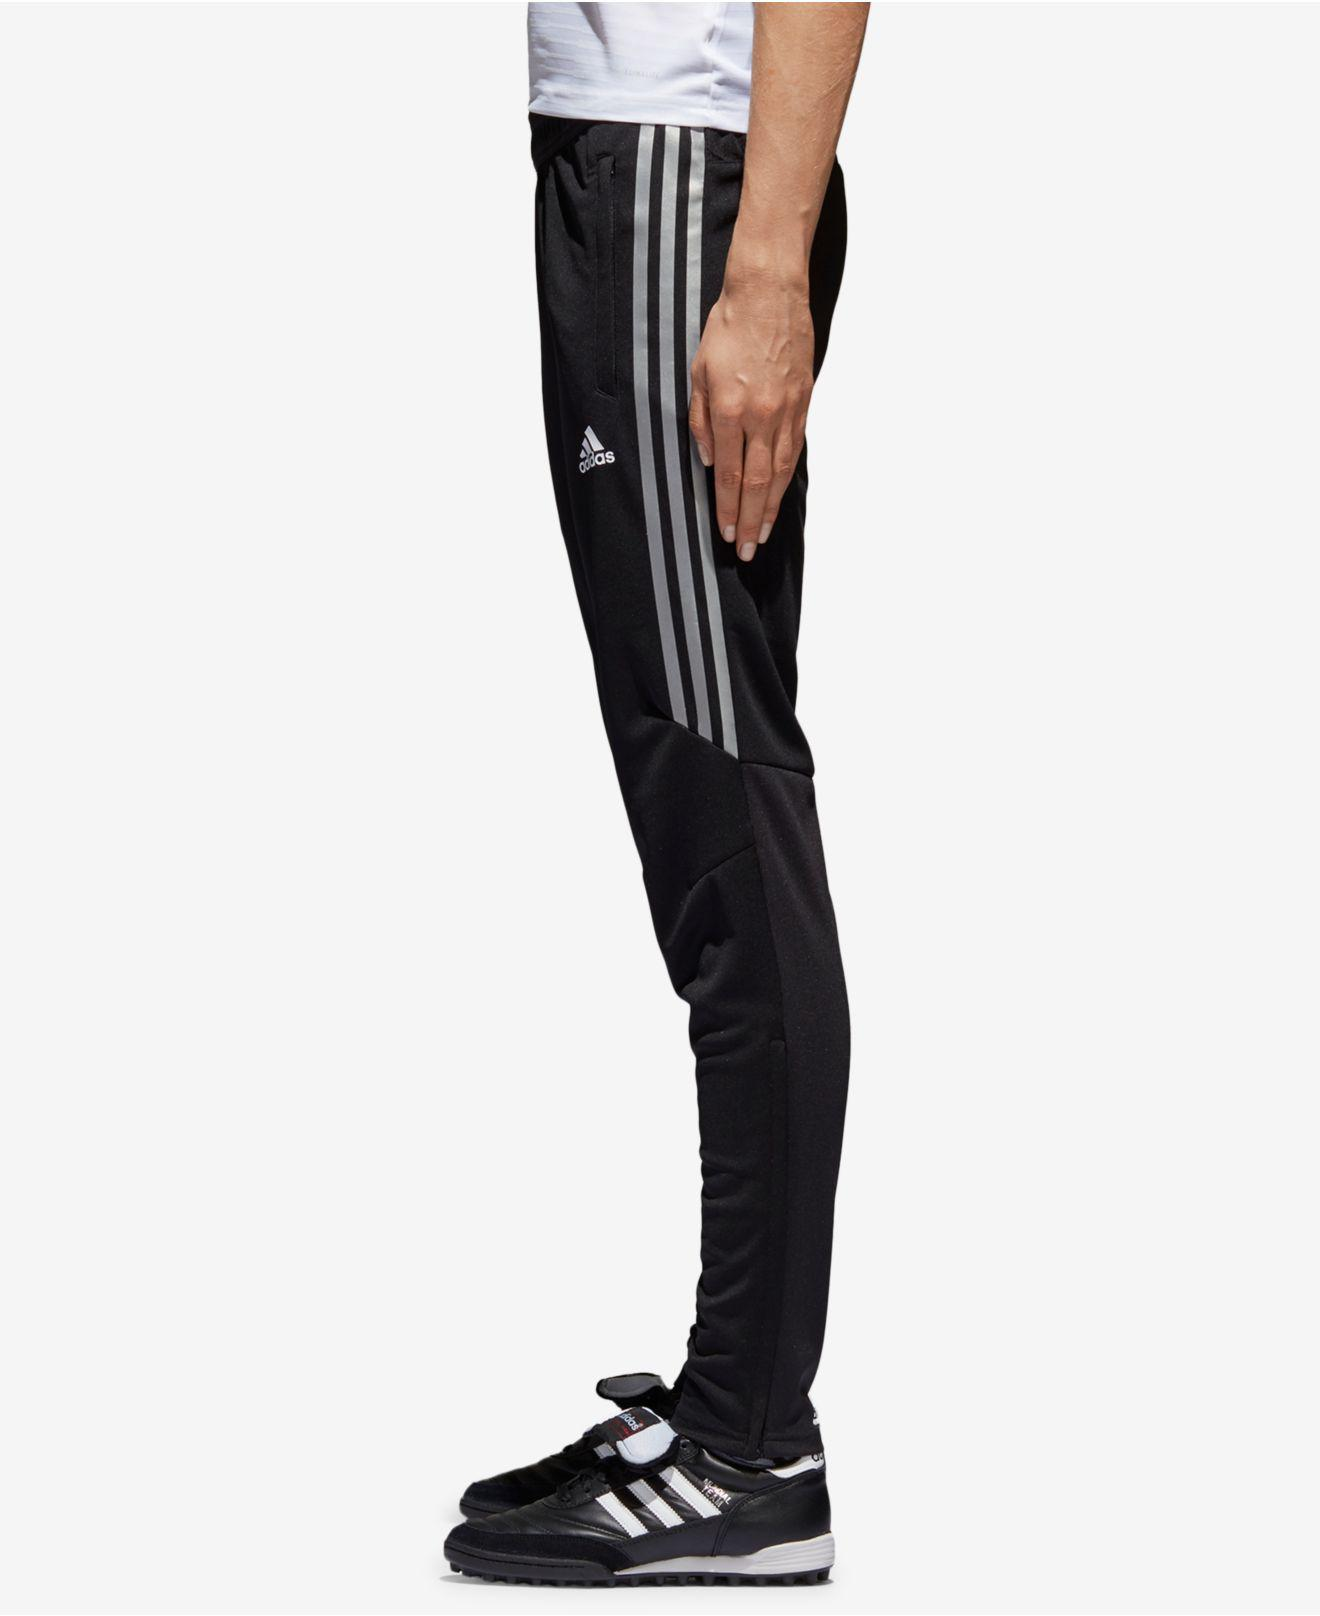 9b7871b93 Lyst - Adidas Climacool® Tiro Soccer Pants in Black for Men